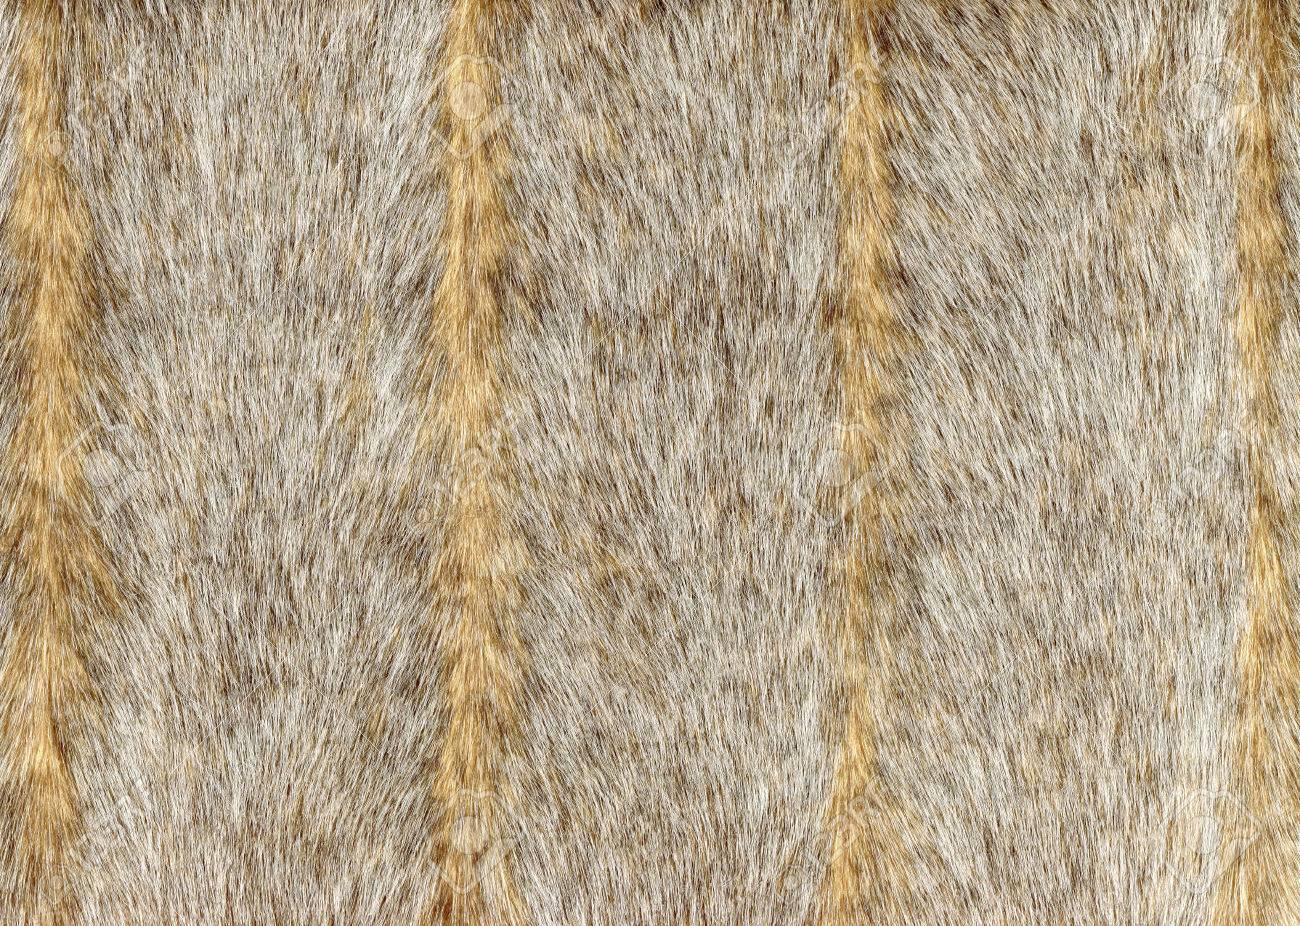 Grey faux fur with vertical stripes.Background, texture, decorative wallpapers - 69106734